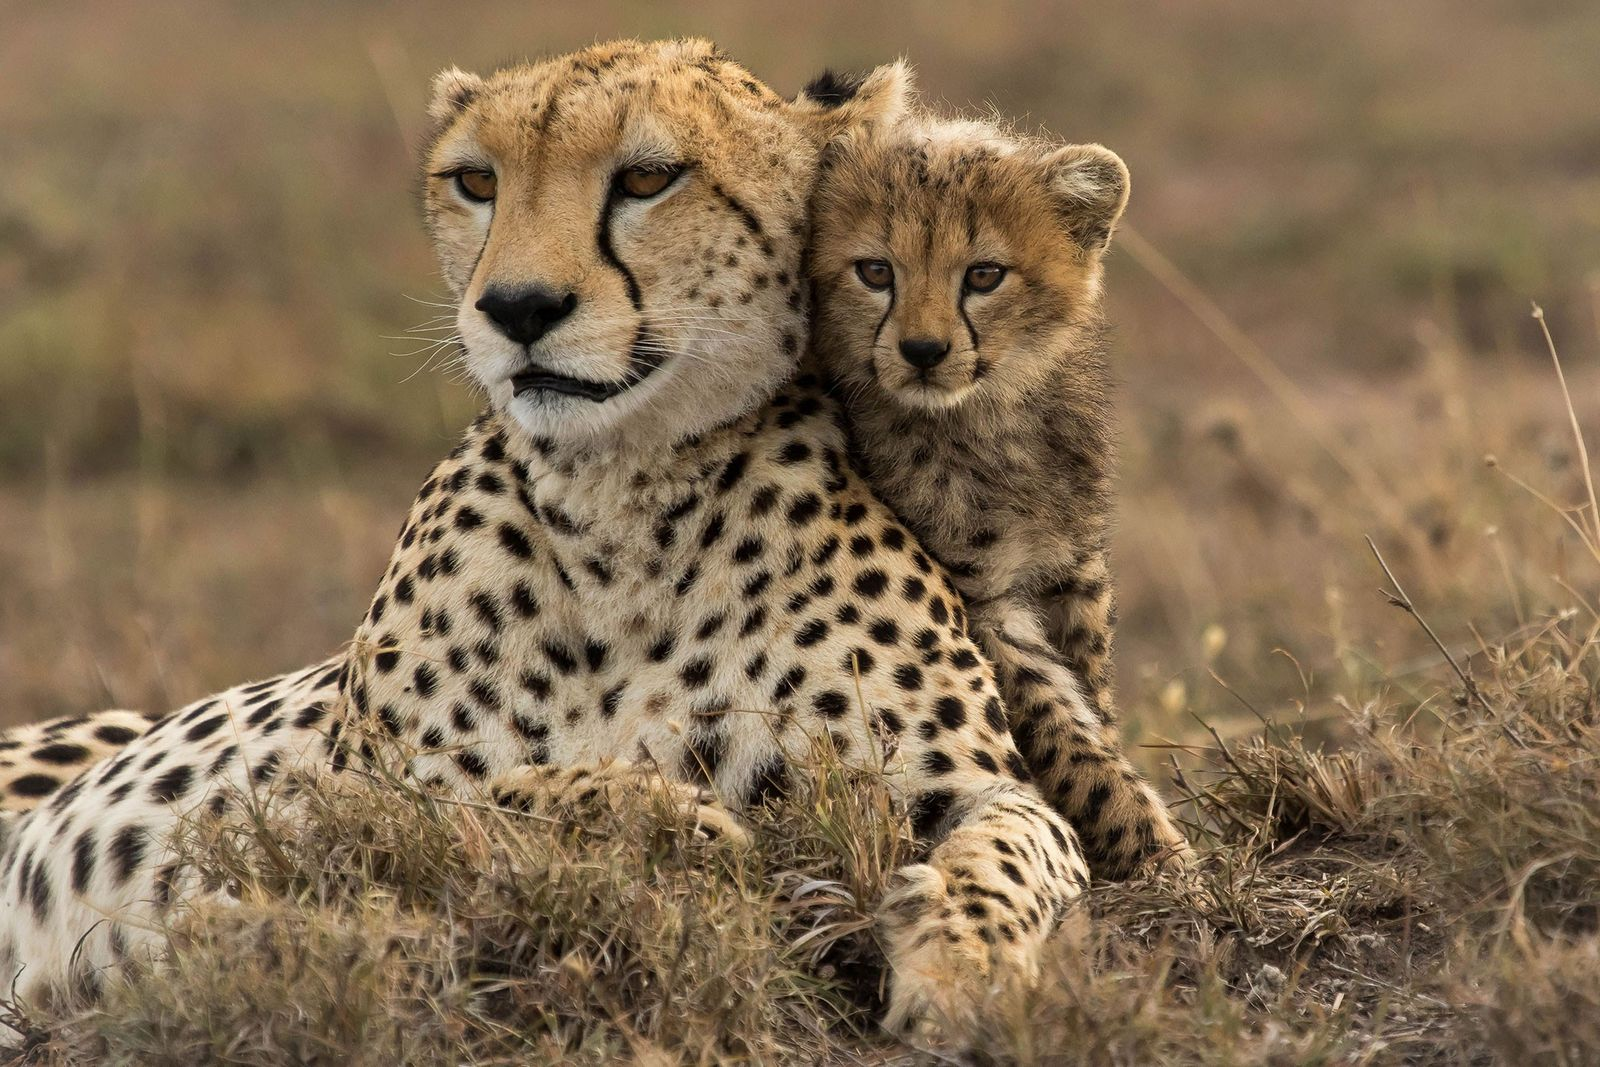 After losing its siblings to lions, a young cub keeps close to its mother in Masai ...